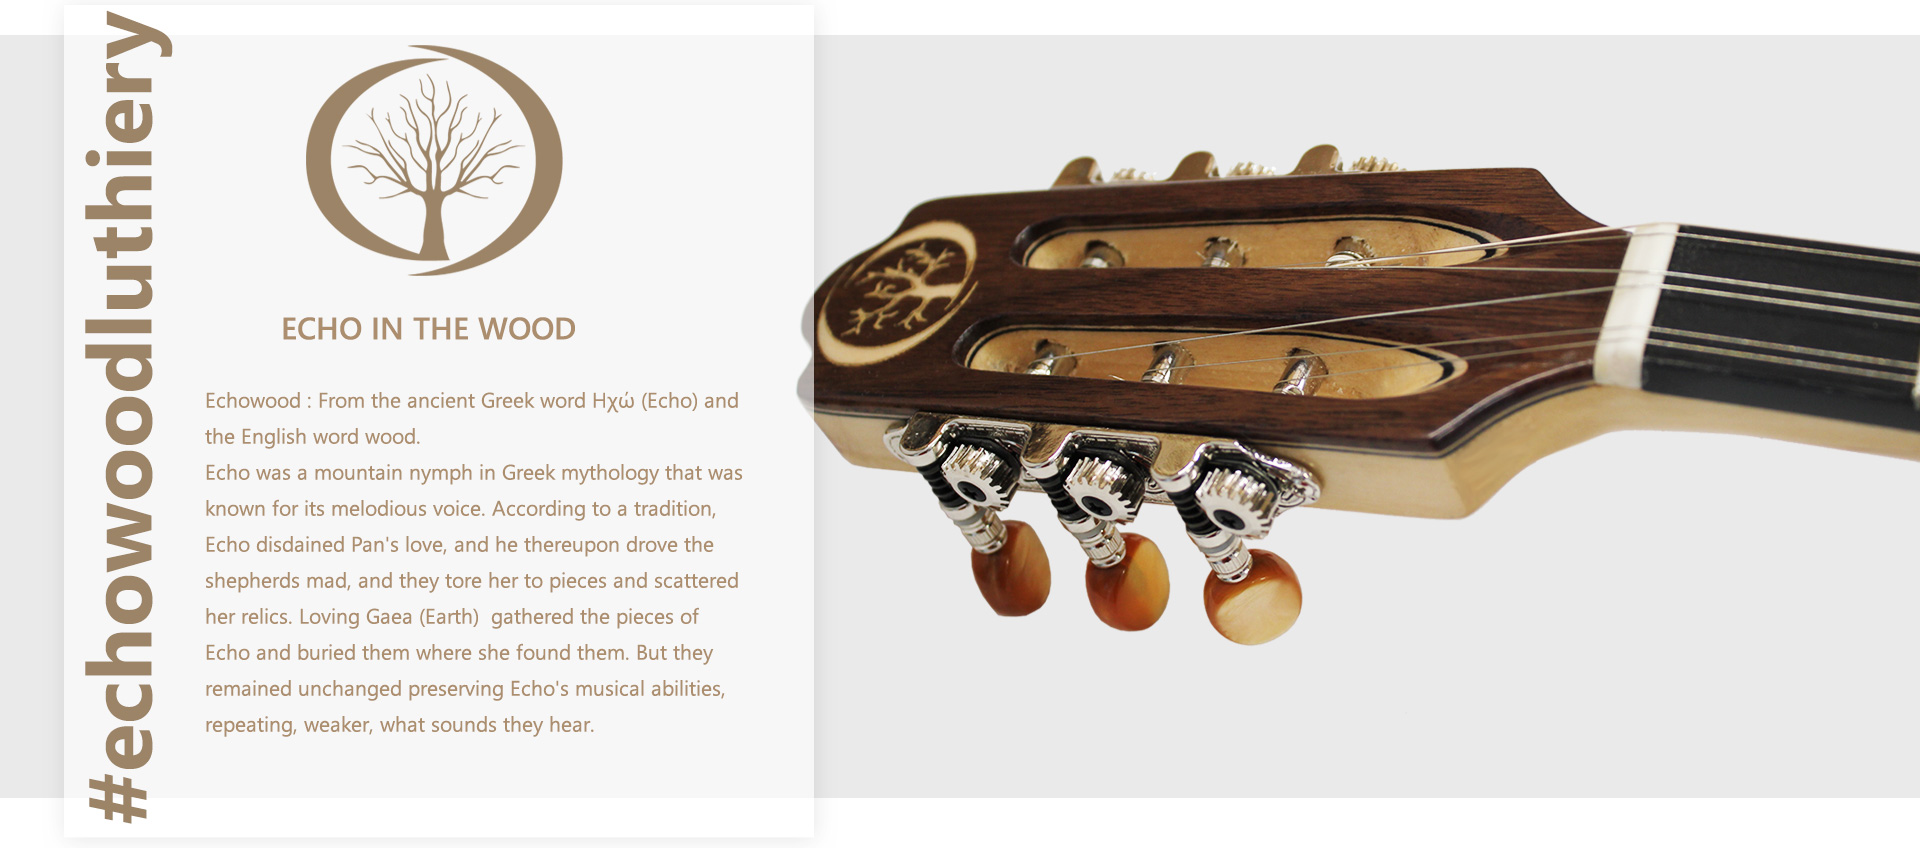 Echowood Luthiery